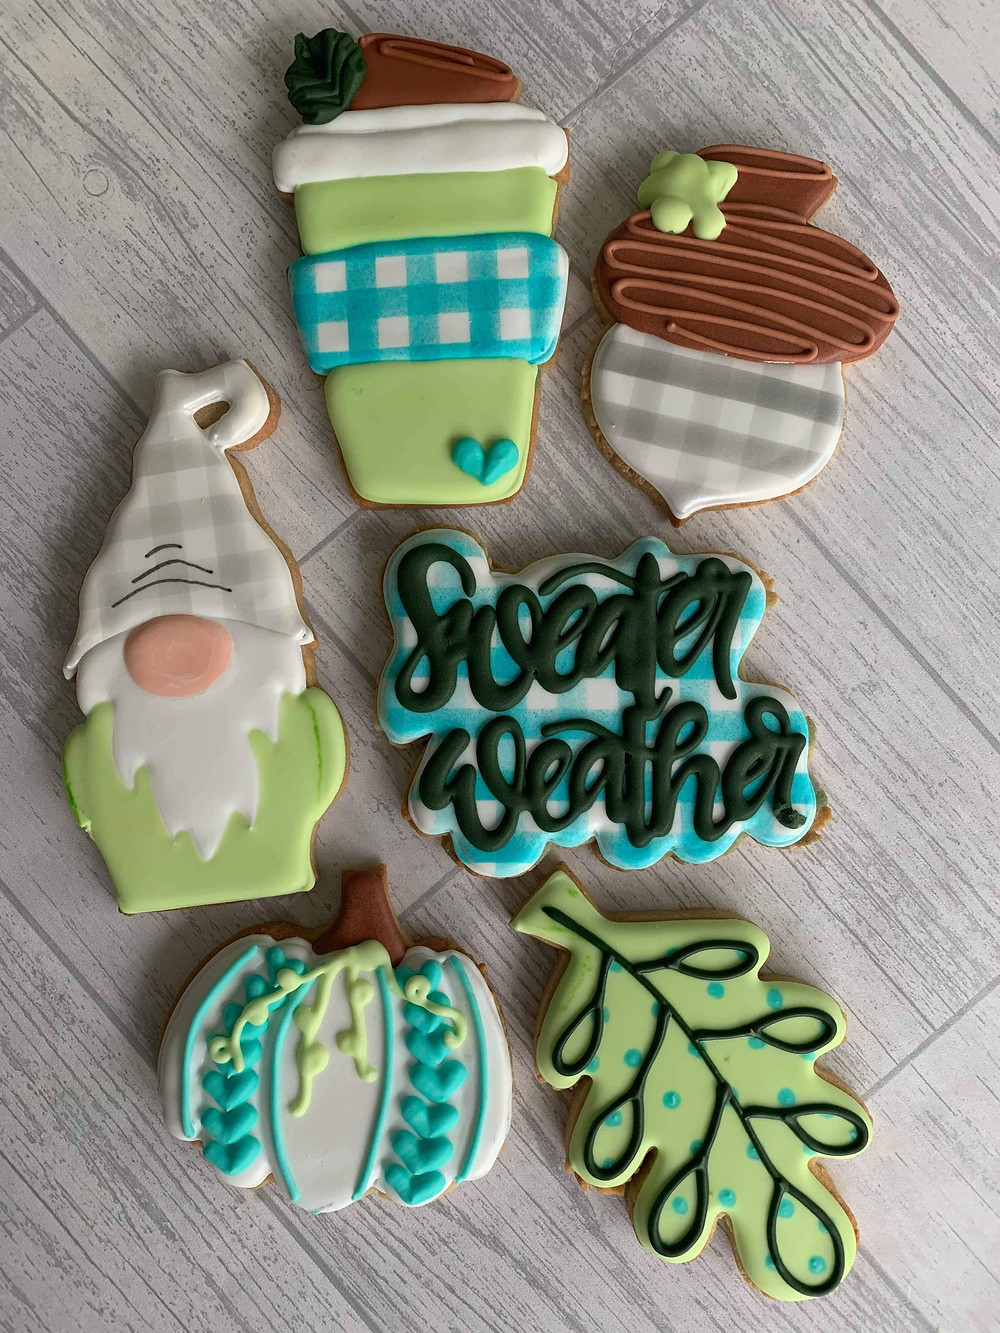 Seasonal Cookies Decorated Iced Biscuits